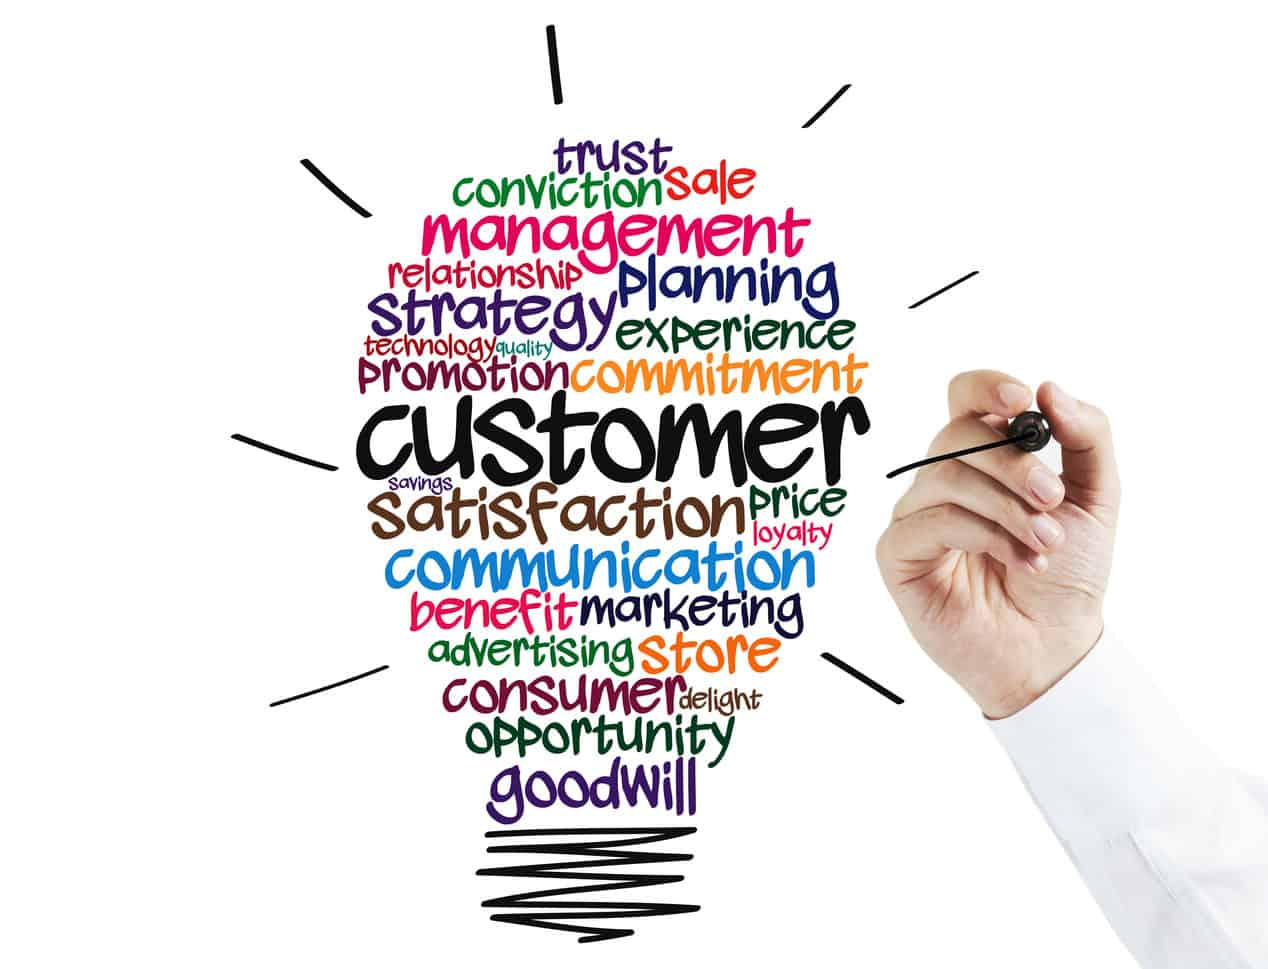 30 must-know customer experience ressources